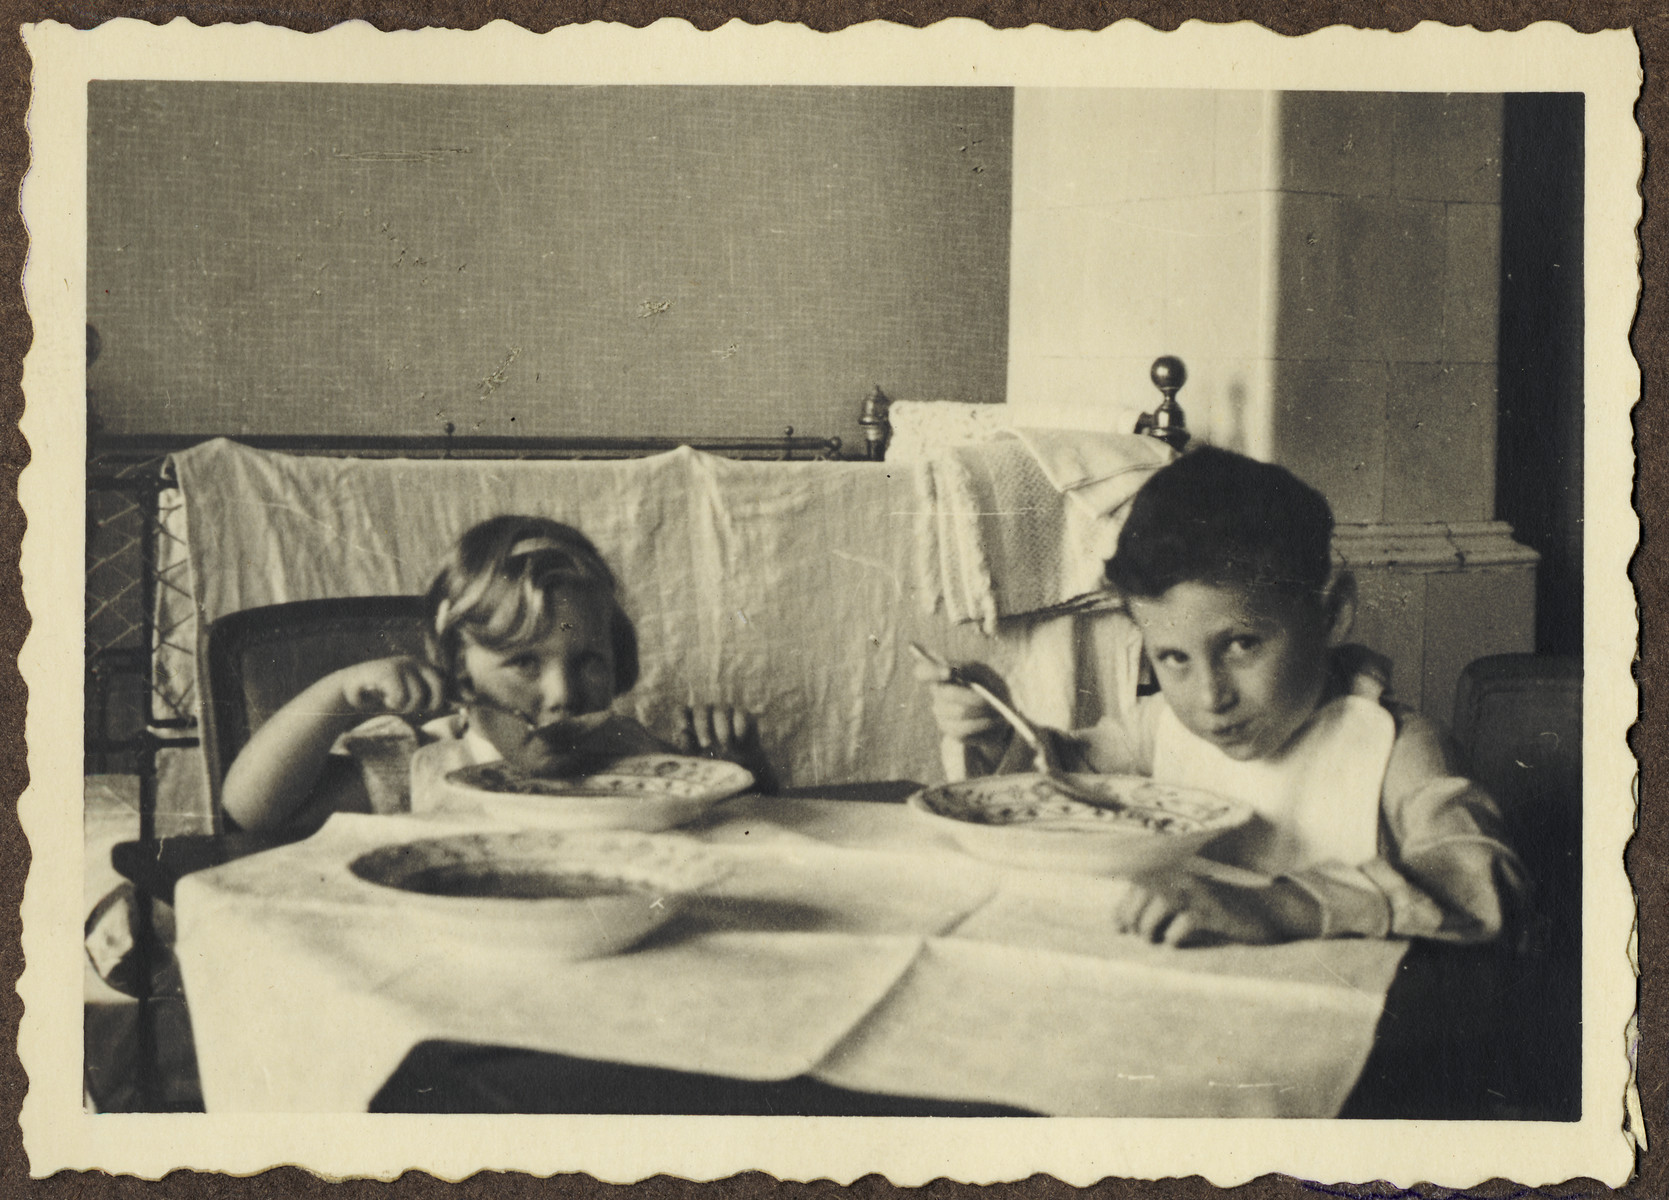 Two young children sit at a table and eat soup.  Pictured on the right is Michal Kraus.  On the left is Eva Schur, the daughter of his cousin.    Eva's grandmother, Jenny Schur nee Goldschmid, was the sister of Michal's mother.  Eva was the daughter of Franta Schur, the cousin of Michal Kraus.  Eva perished in Auschwitz with her mother and brother, while her father, Franta Schur survived the war in England.  The picture was taken in the home of her grandmother, Jenny Schur.